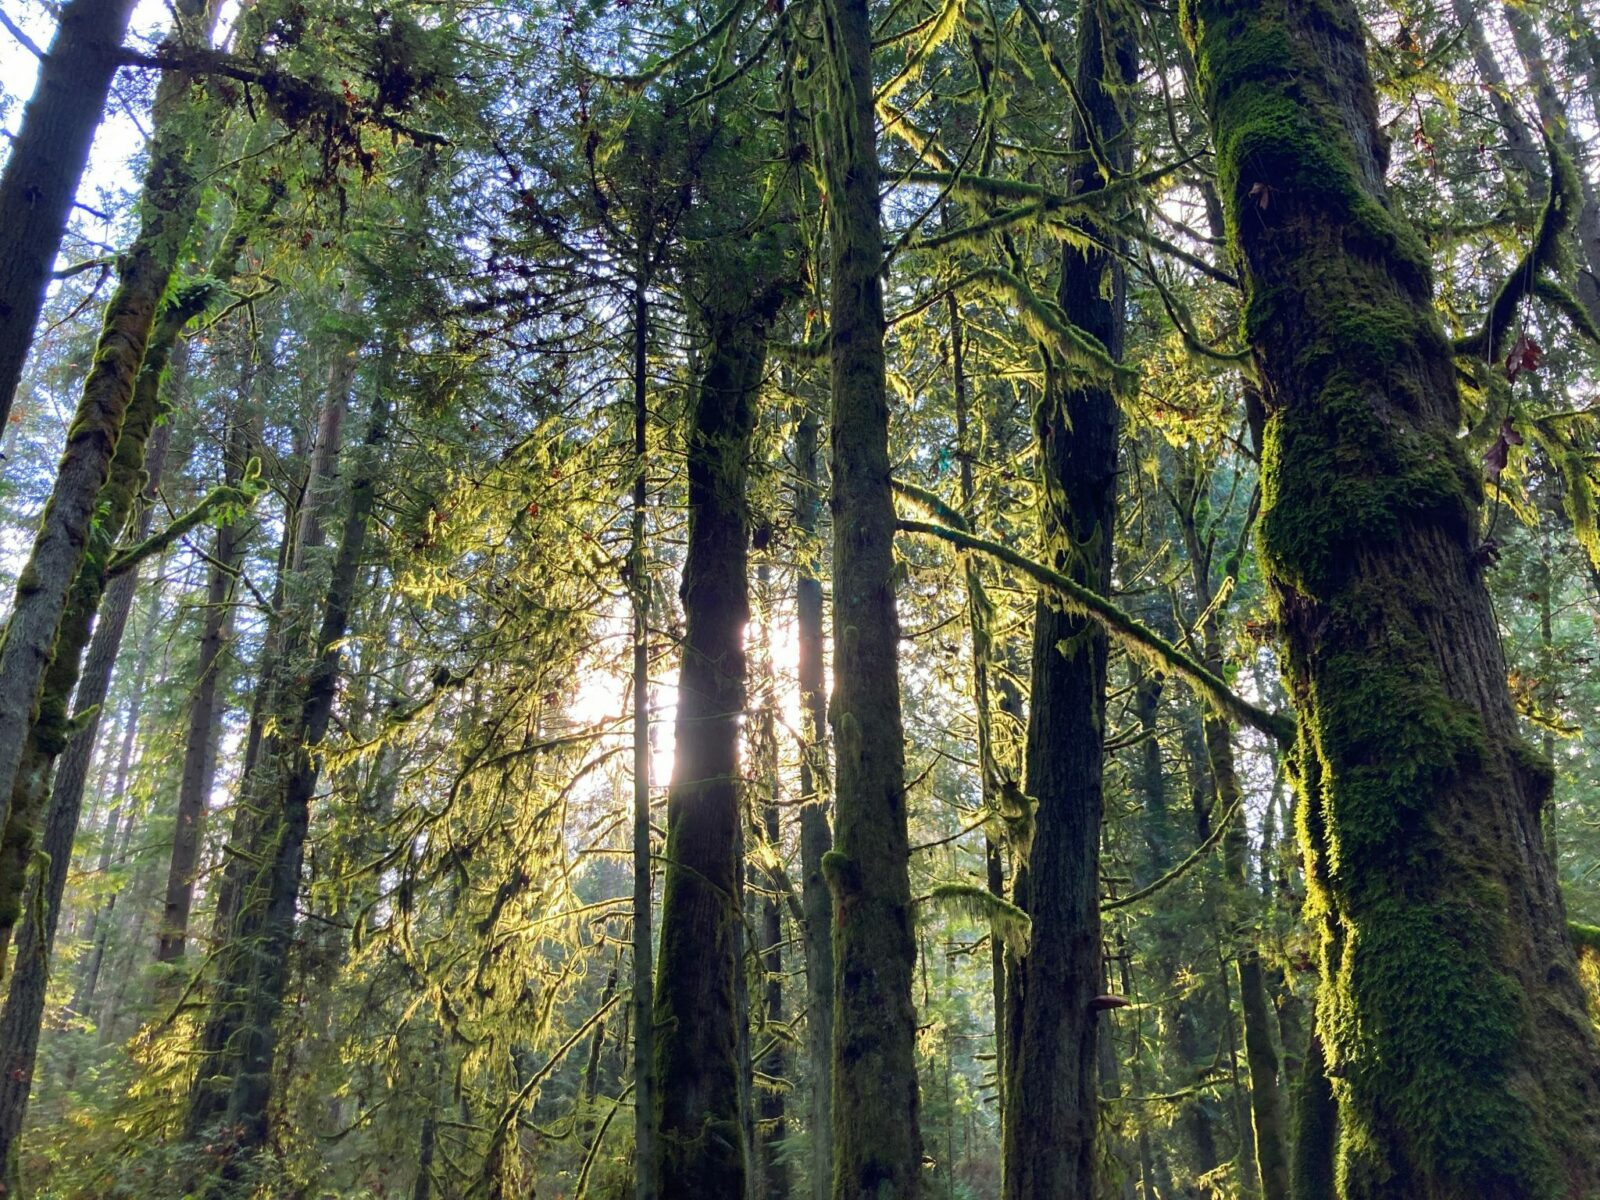 Tall evergreen trees covered in moss surround the Grand Forest trail, one of the best hikes on Bainbridge Island. The sun is backlighting the trees and moss